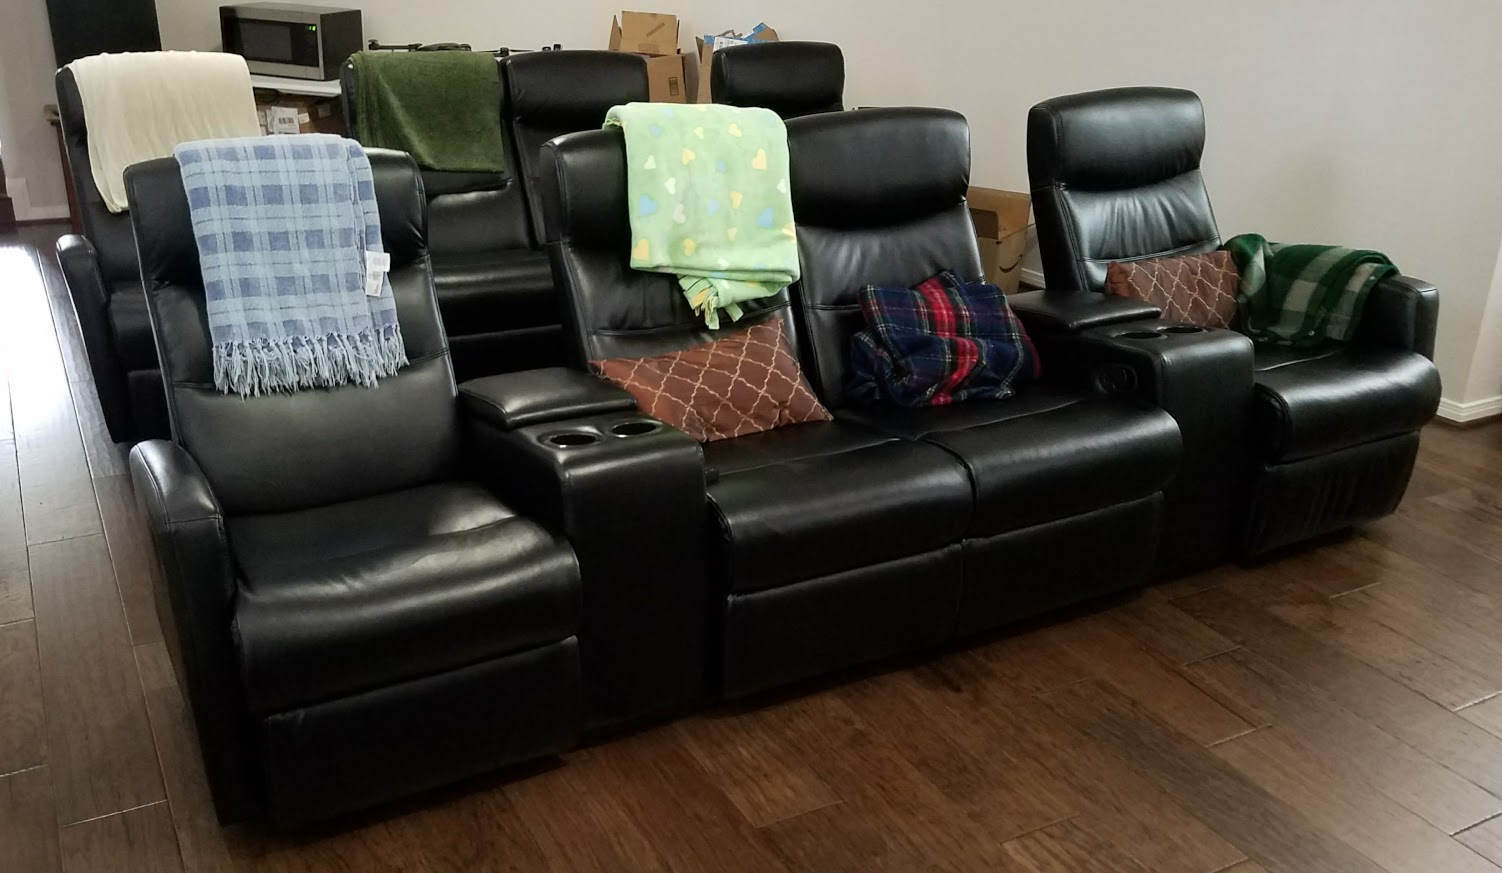 review flash furniture 4 seat black leather home theater recliner with storage consoles. Black Bedroom Furniture Sets. Home Design Ideas